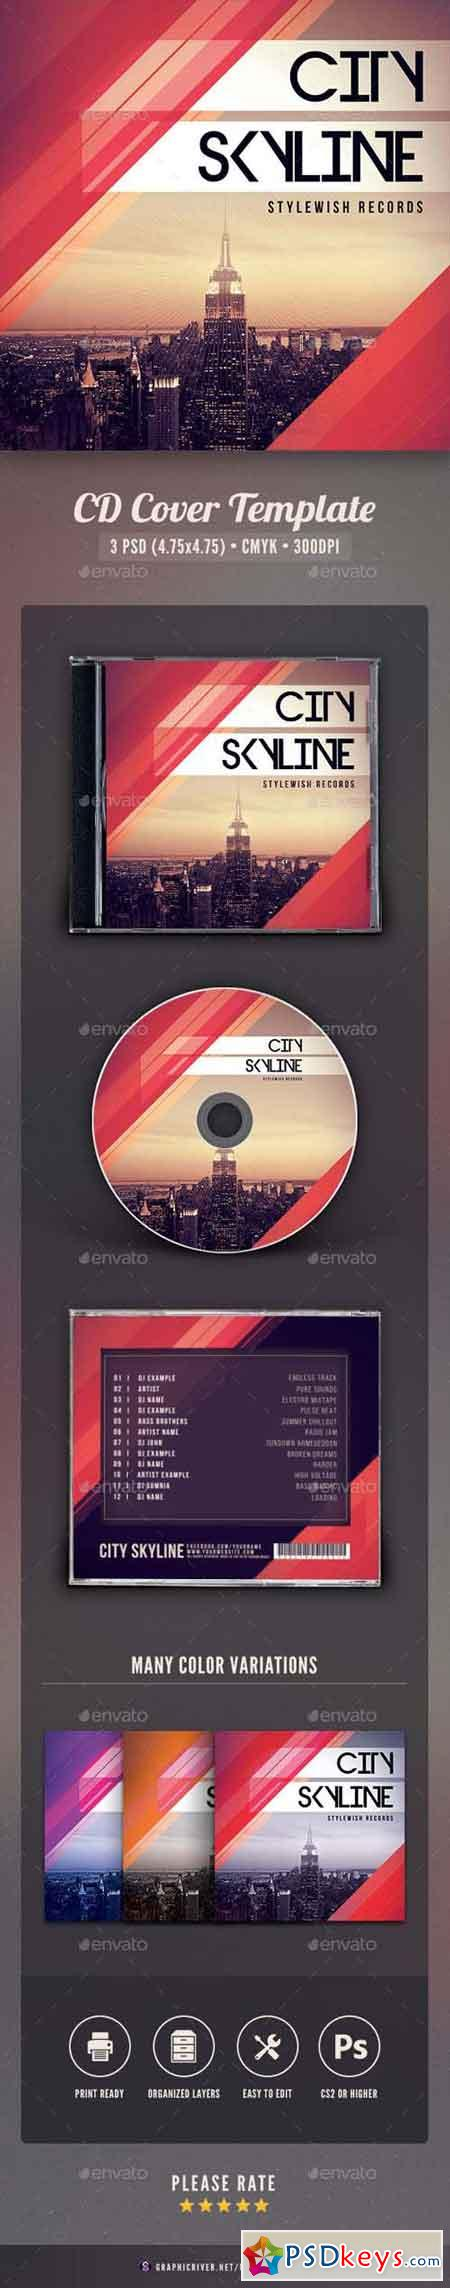 City Skyline CD Cover Artwork 17569265